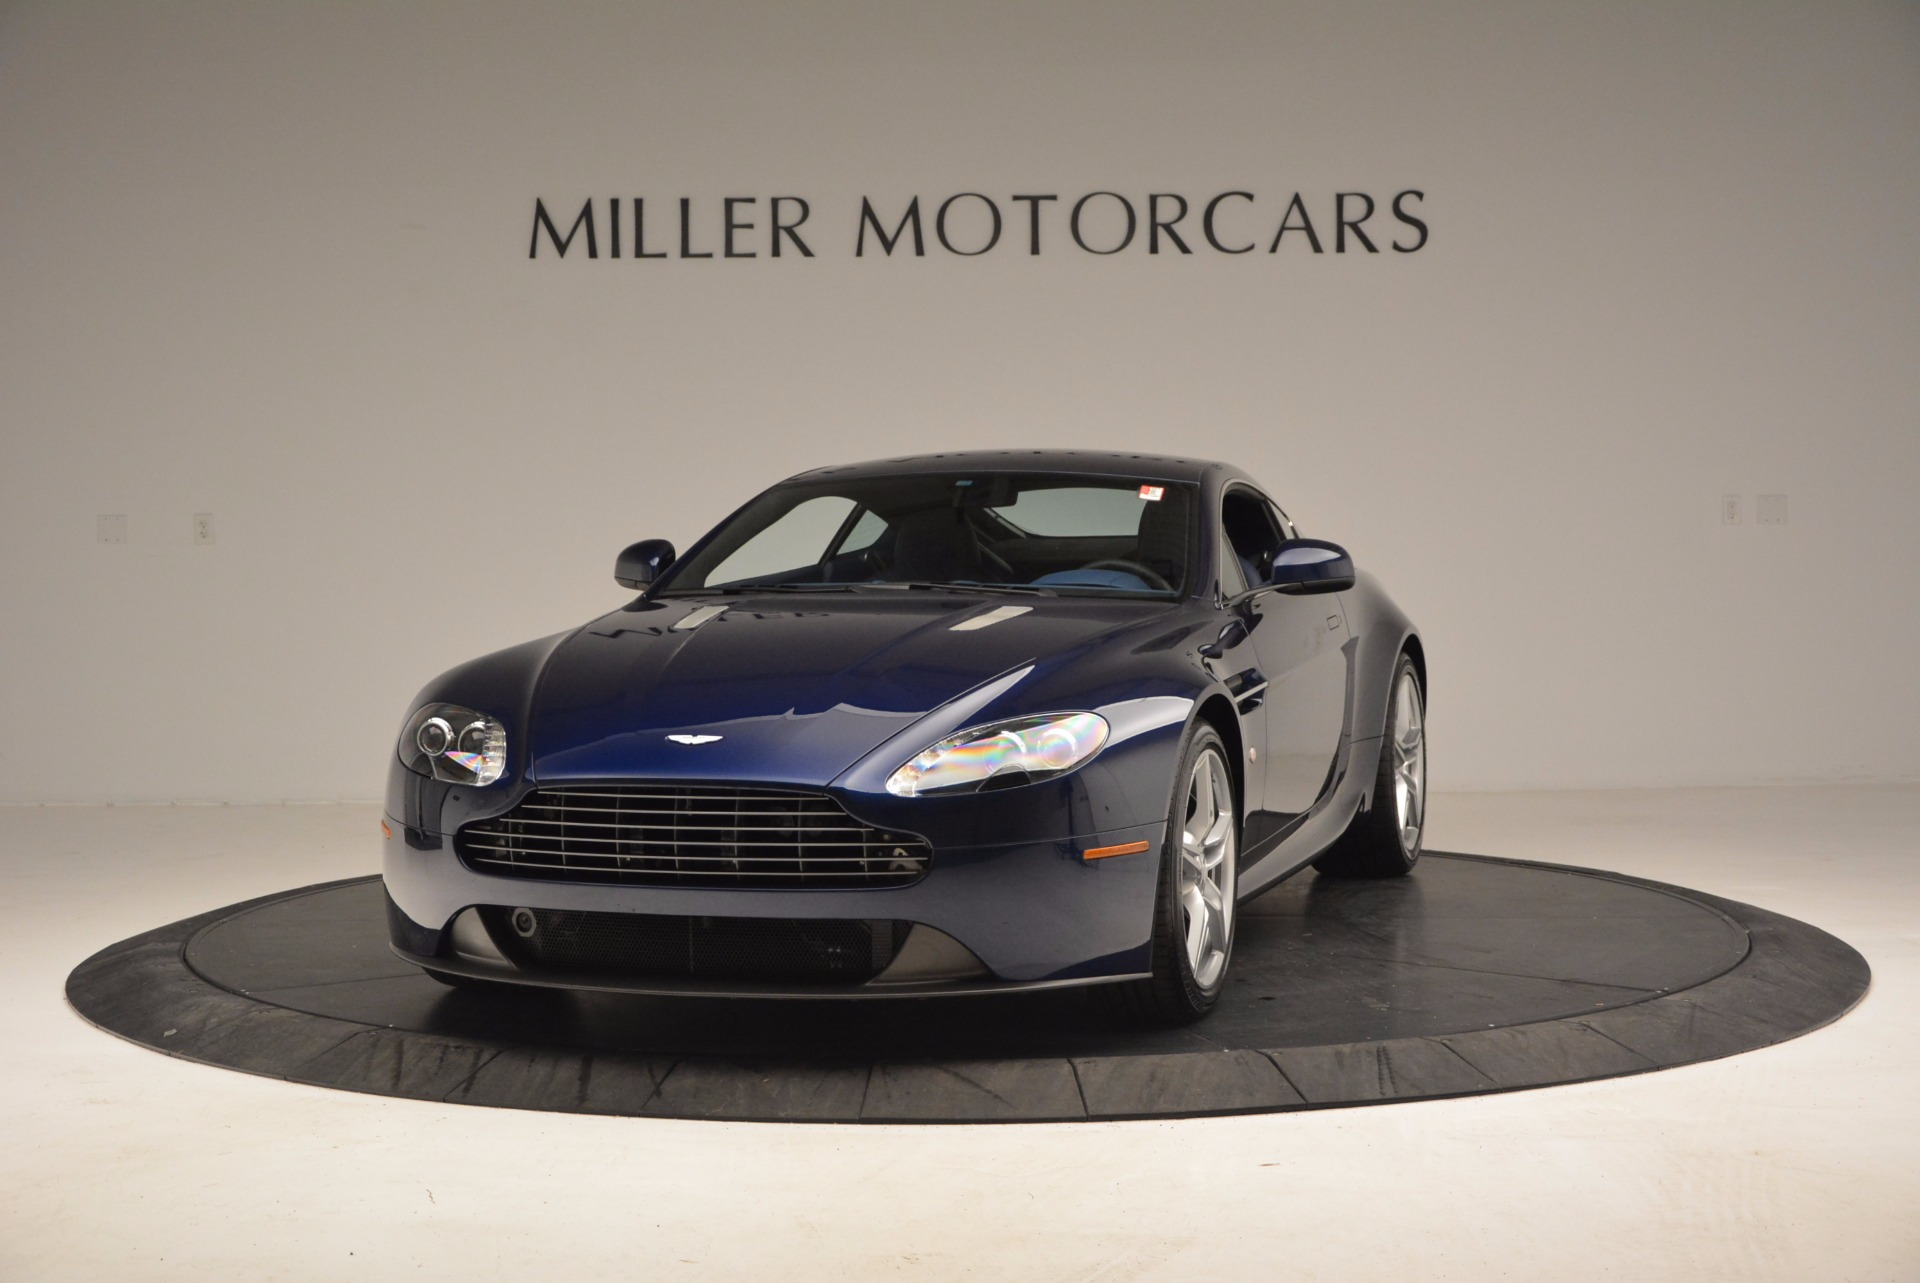 New 2016 Aston Martin V8 Vantage for sale Sold at Rolls-Royce Motor Cars Greenwich in Greenwich CT 06830 1